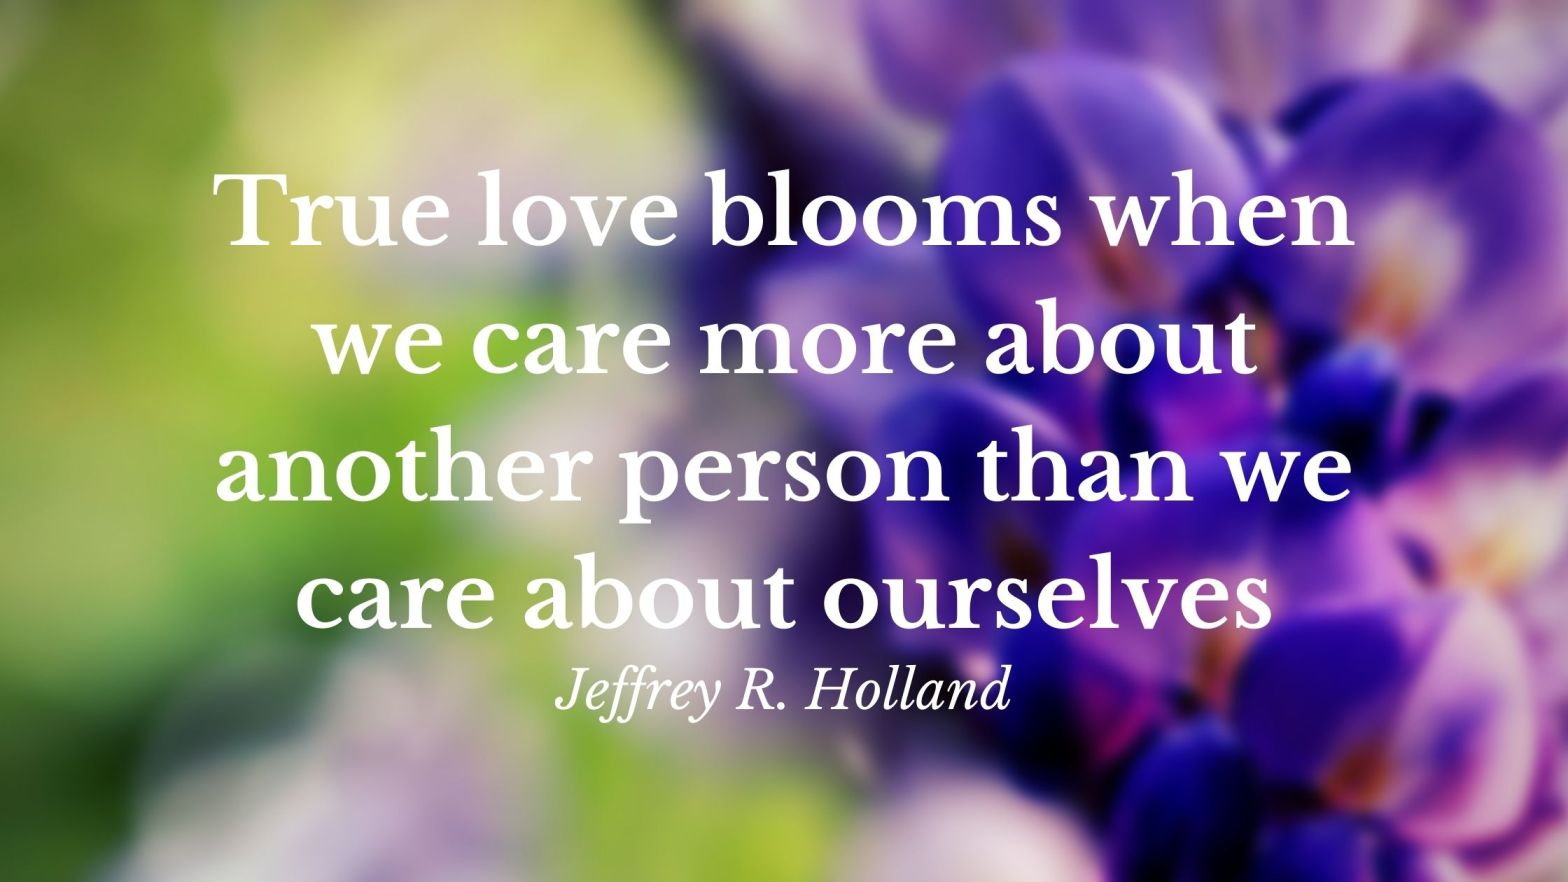 Love blooms when we care more about others